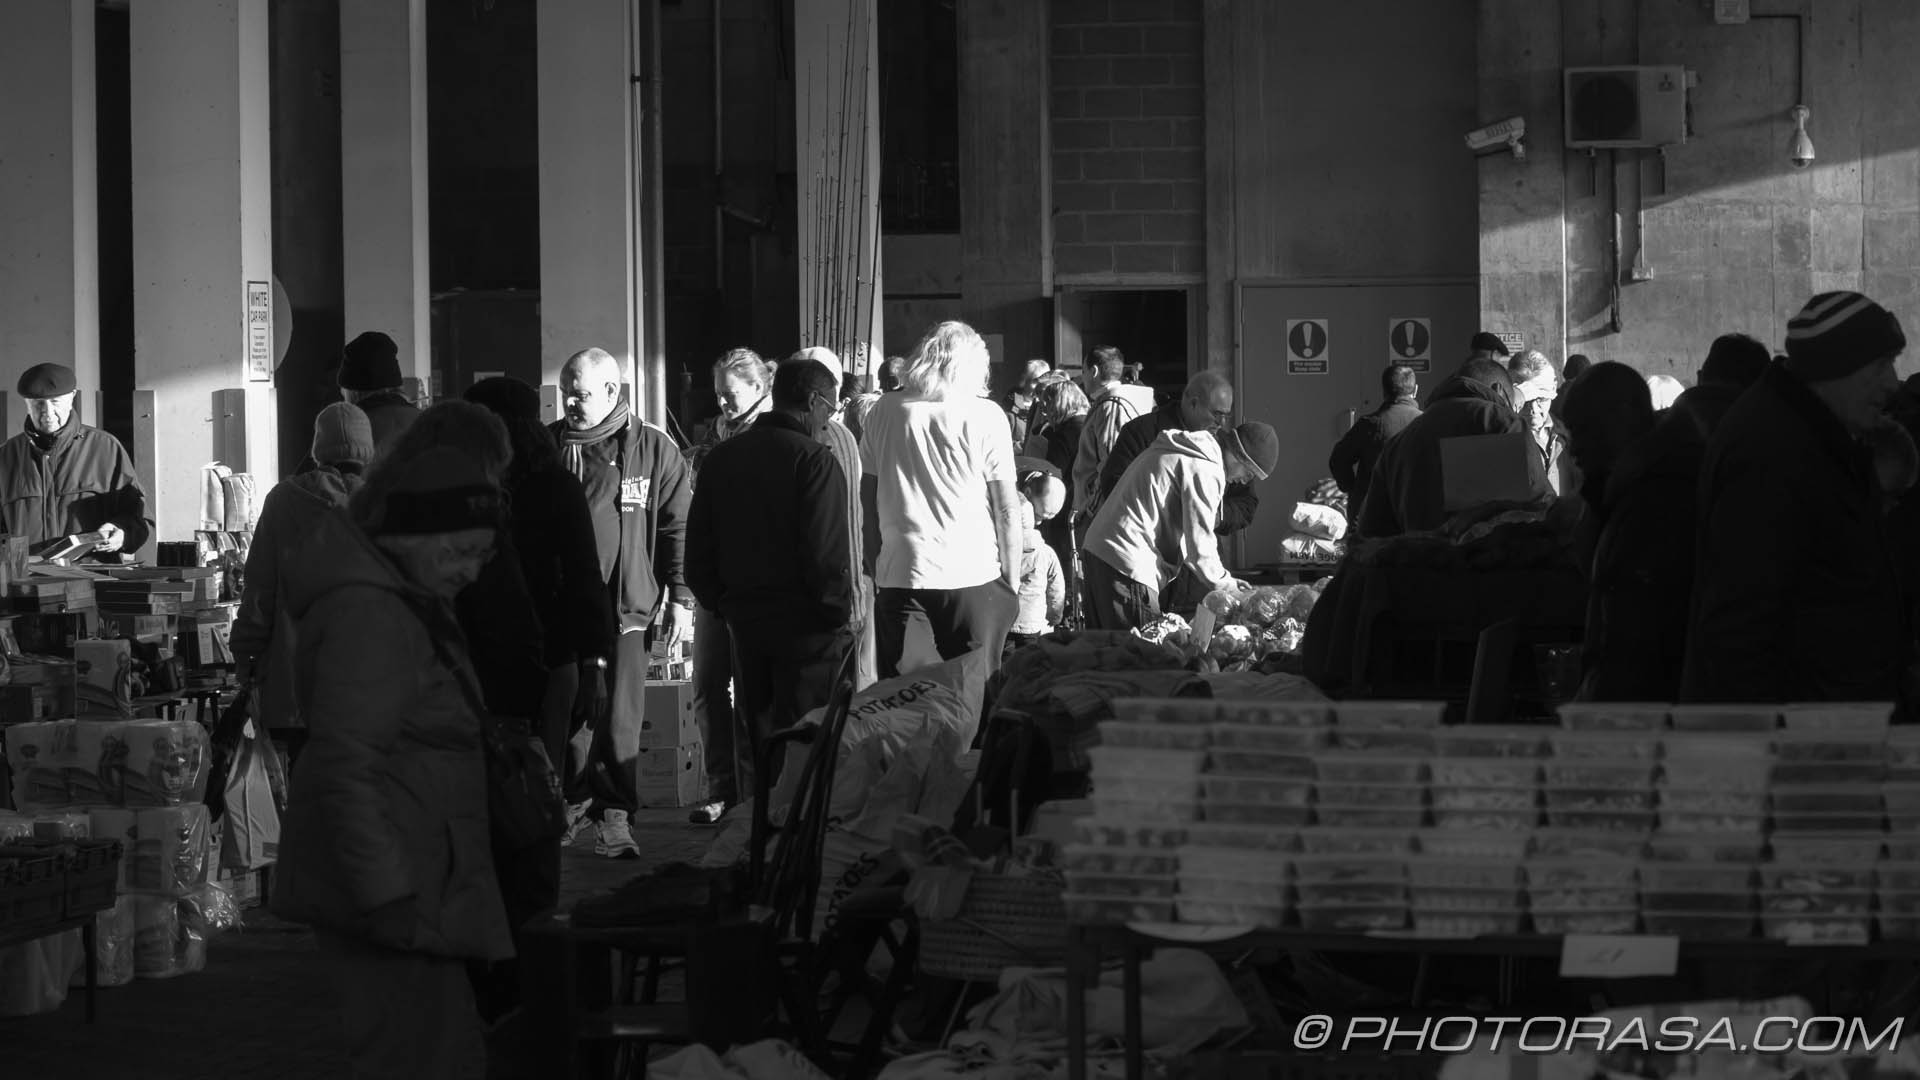 http://photorasa.com/places/maidstone/attachment/crowds-at-maidstone-market/